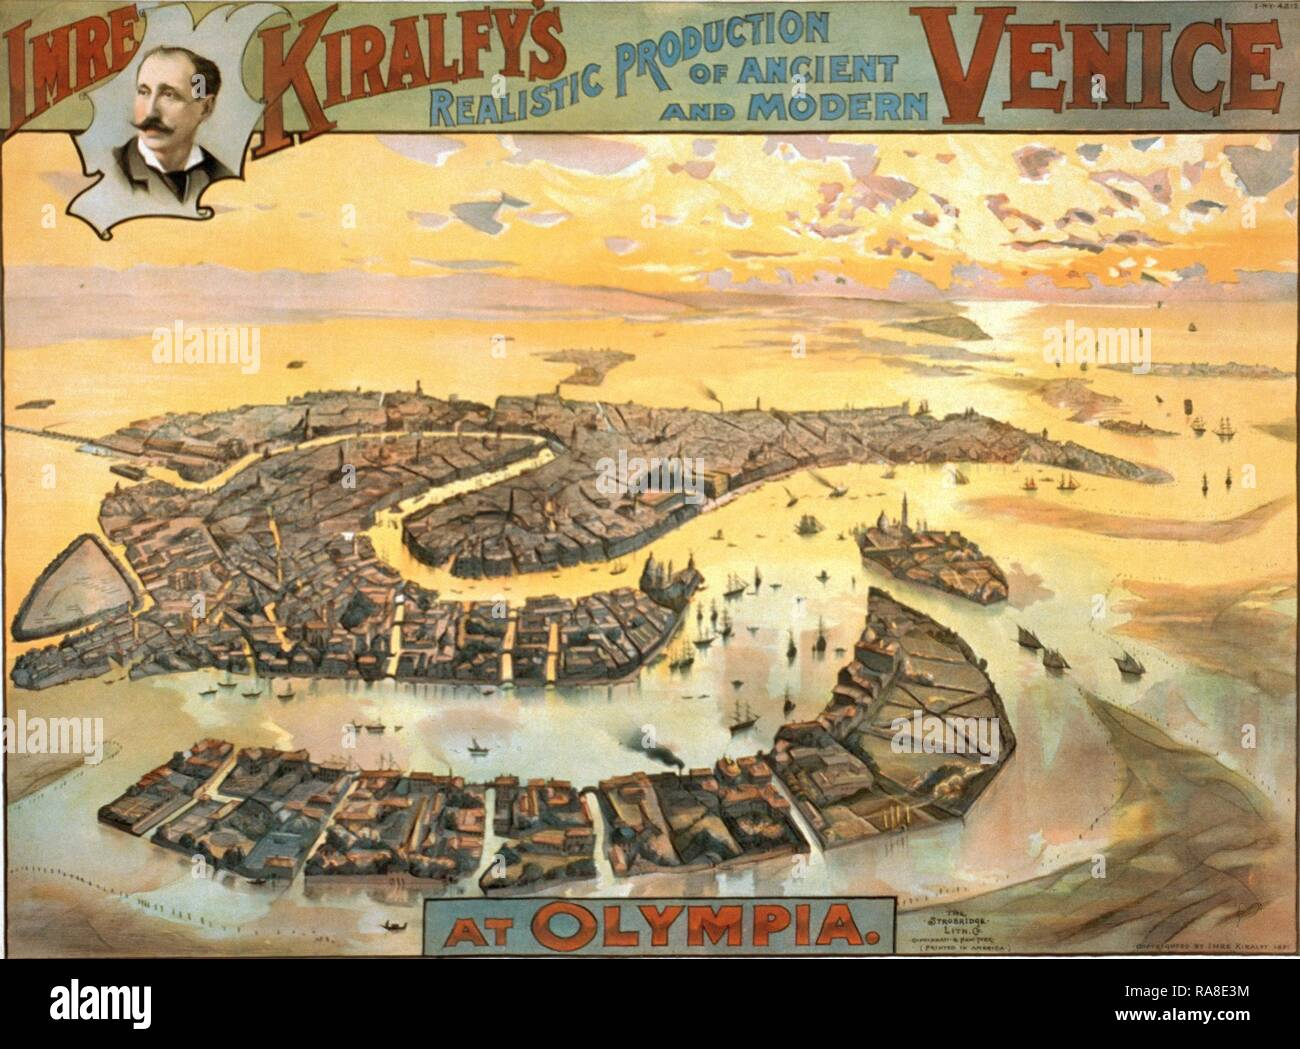 Imre Kiralfy's Realistic Production of Ancient and Modern Venice at Olympia, Bird's-Eye View, Circa 1891, Italy, UK reimagined - Stock Image